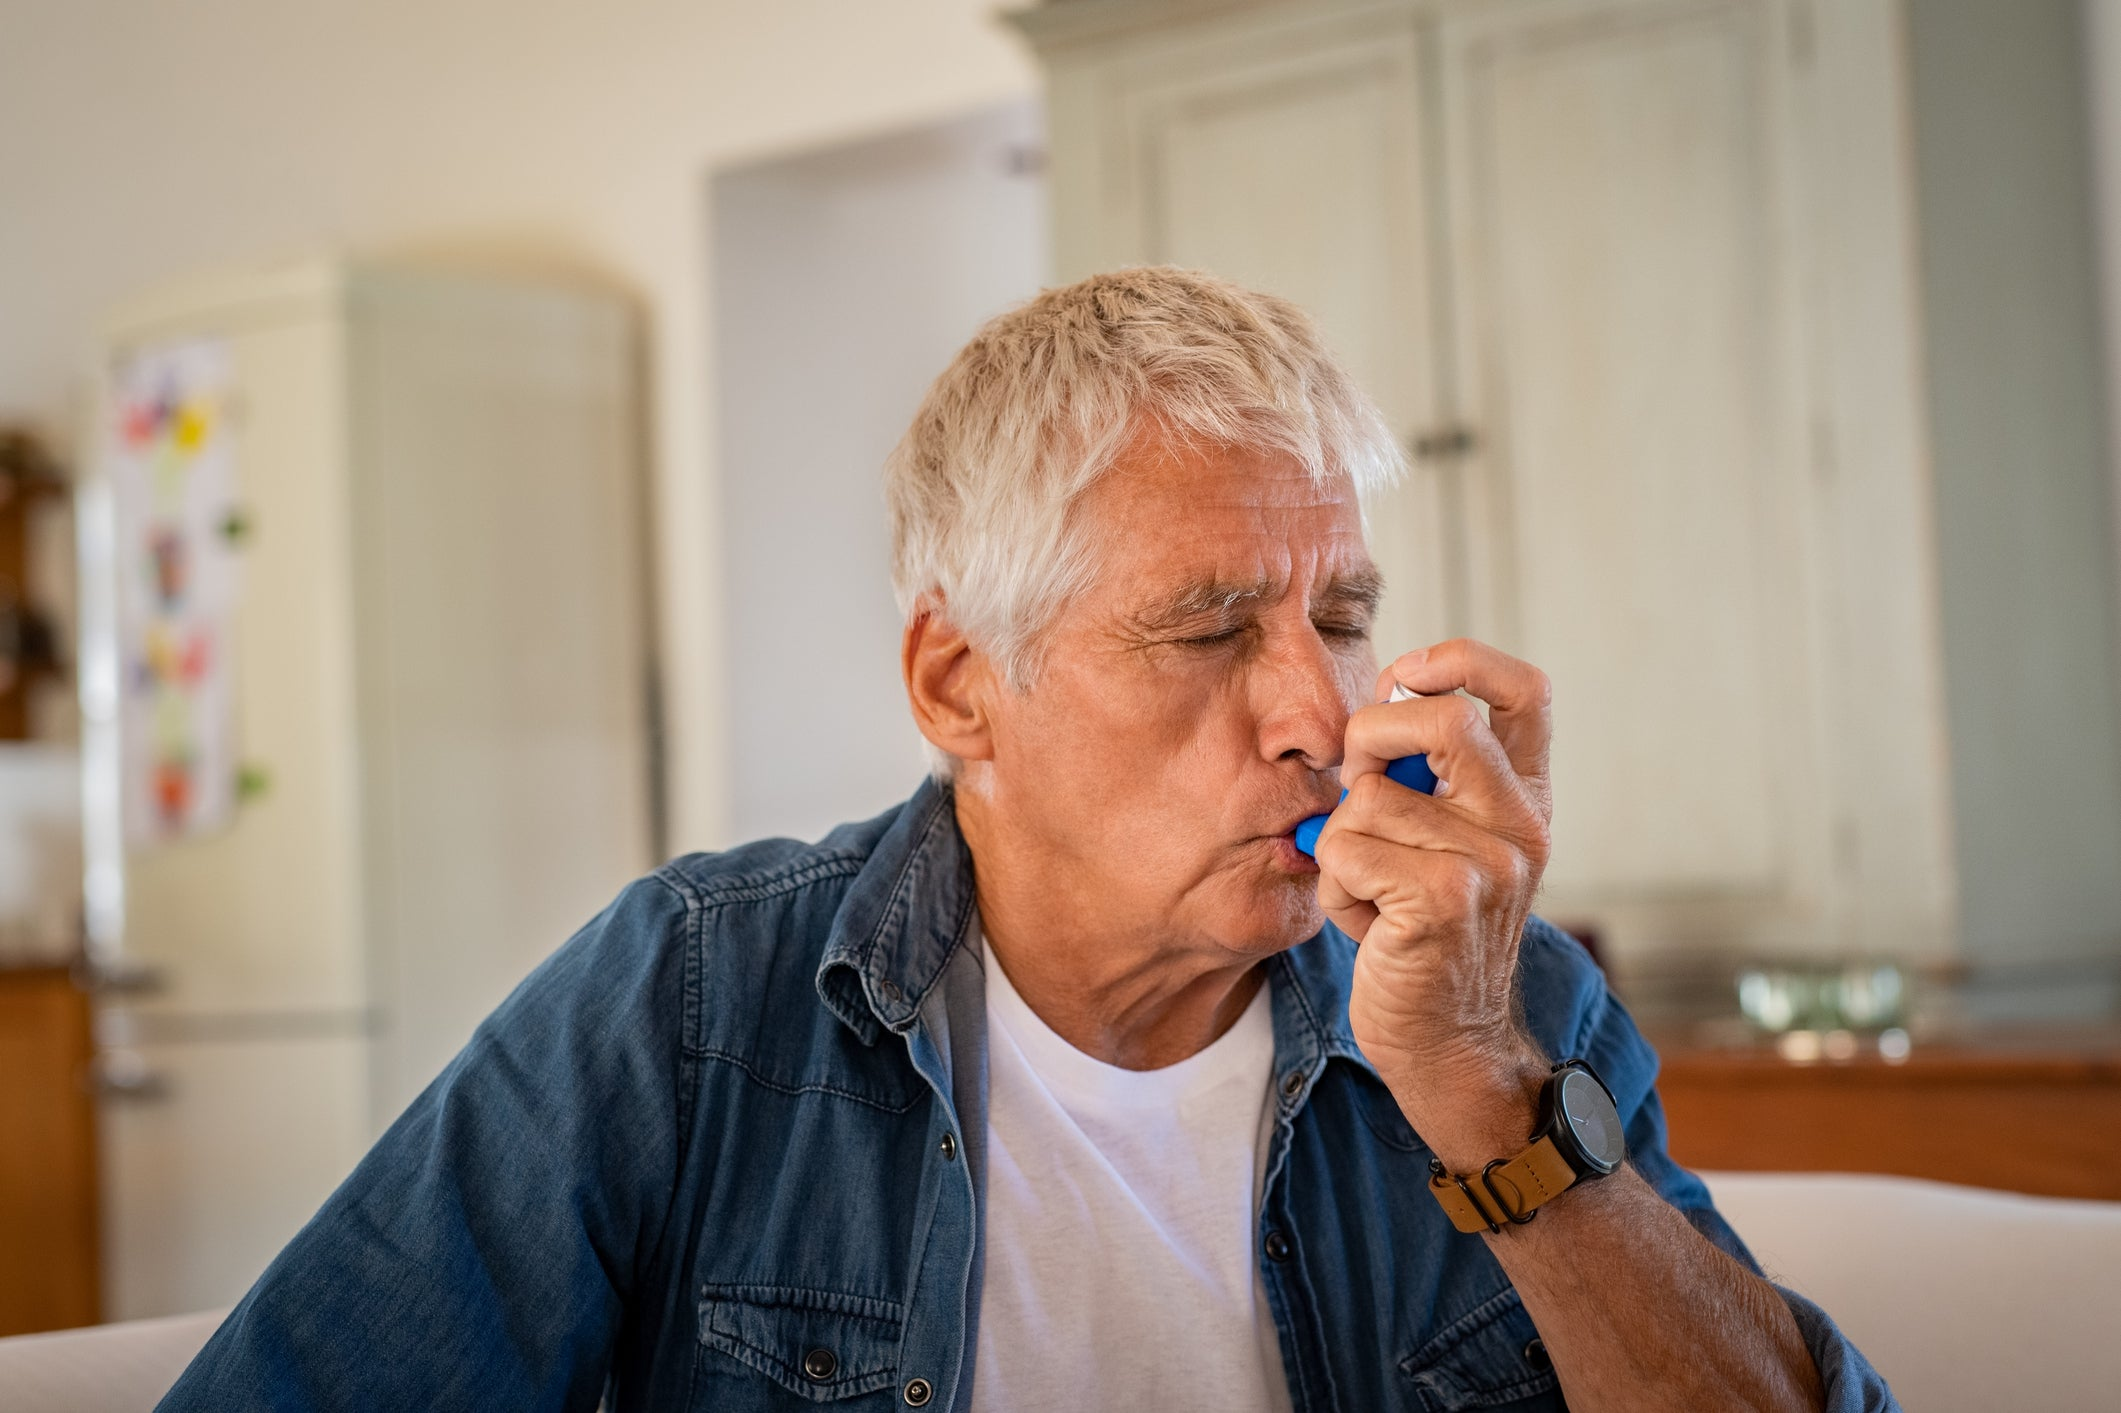 Teva Pharmaceutical Gets a Taste of Its Own Medicine As the FDA Approves a Generic of Its Asthma Drug | The Motley Fool